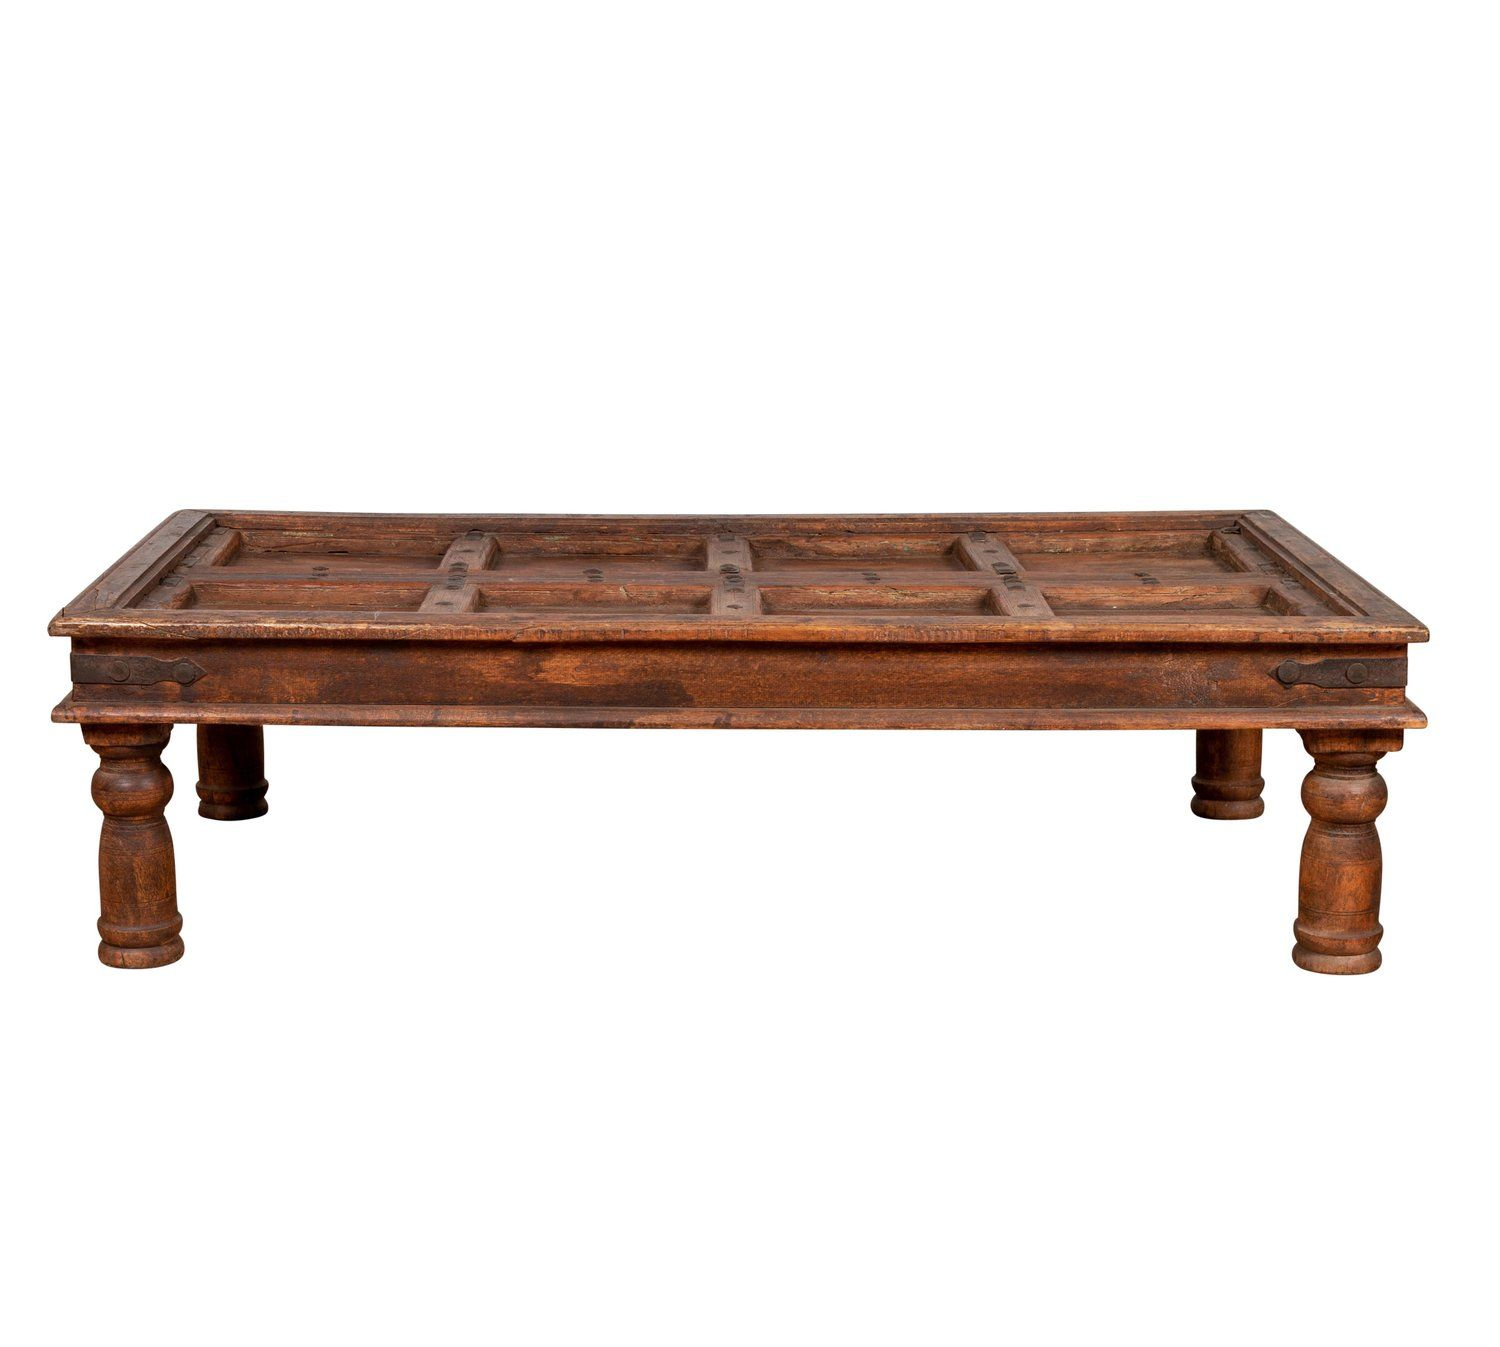 Antique Sheesham Wood Indian Palace Door Made Into Coffee Table With Iron Studs Sheesham Wood Coffee Table Wood Coffee Table [ 1347 x 1500 Pixel ]